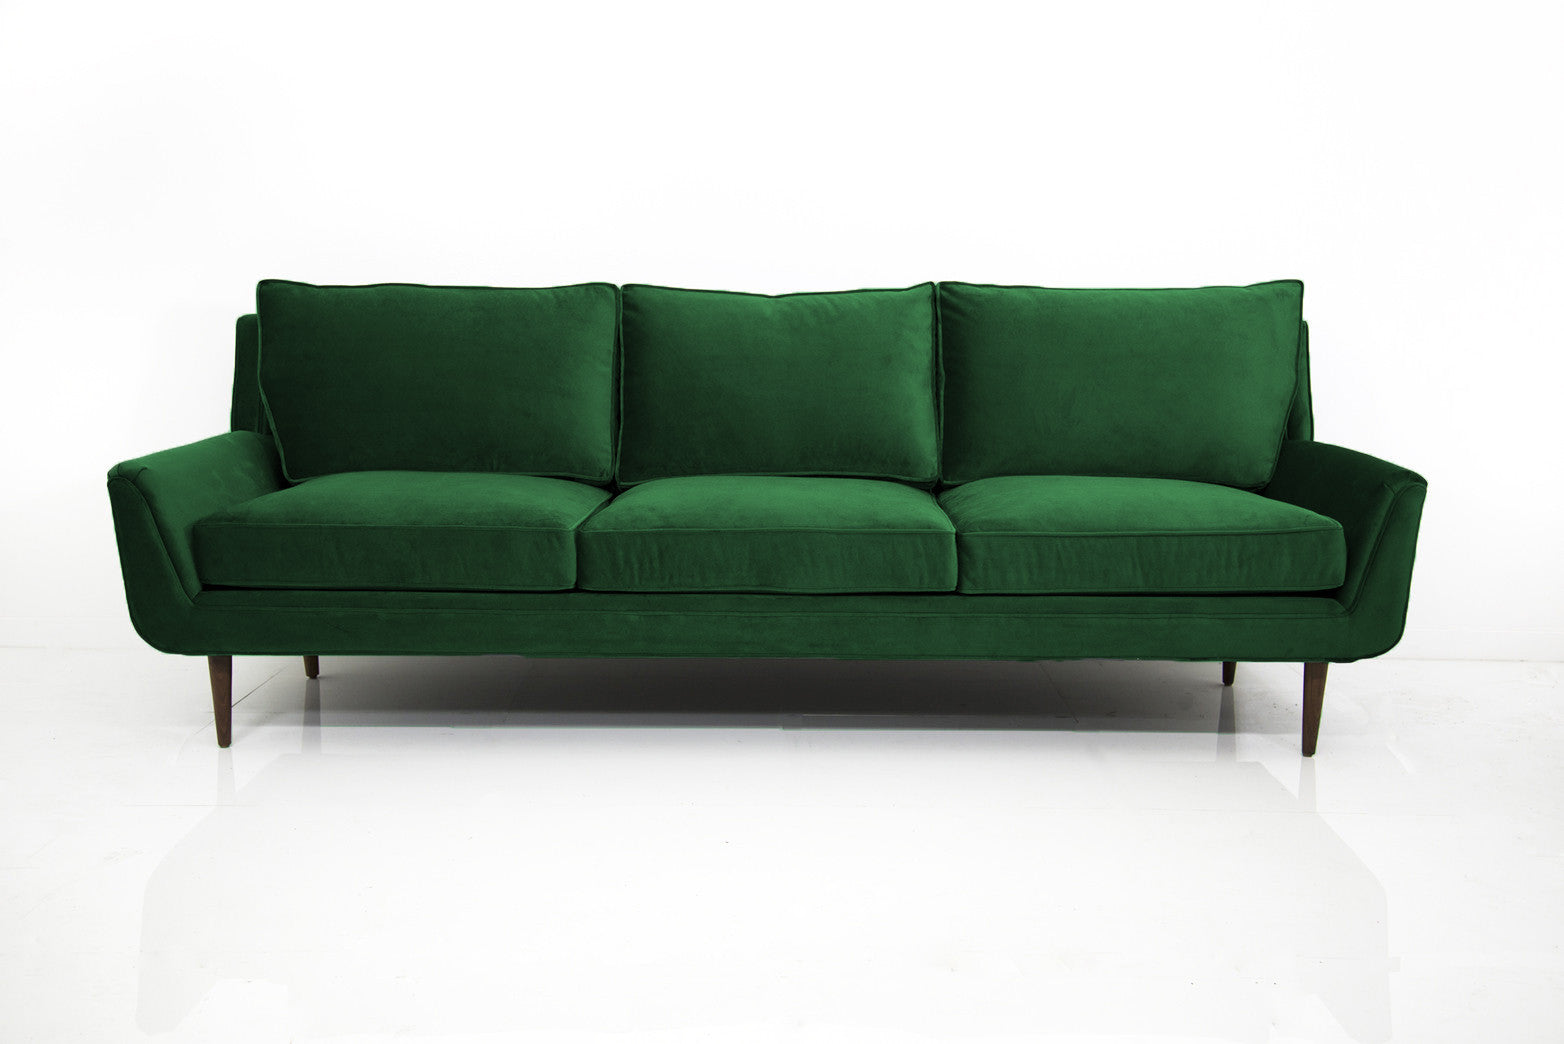 online store d6665 84231 Stockholm Sofa in Emerald Green Velvet